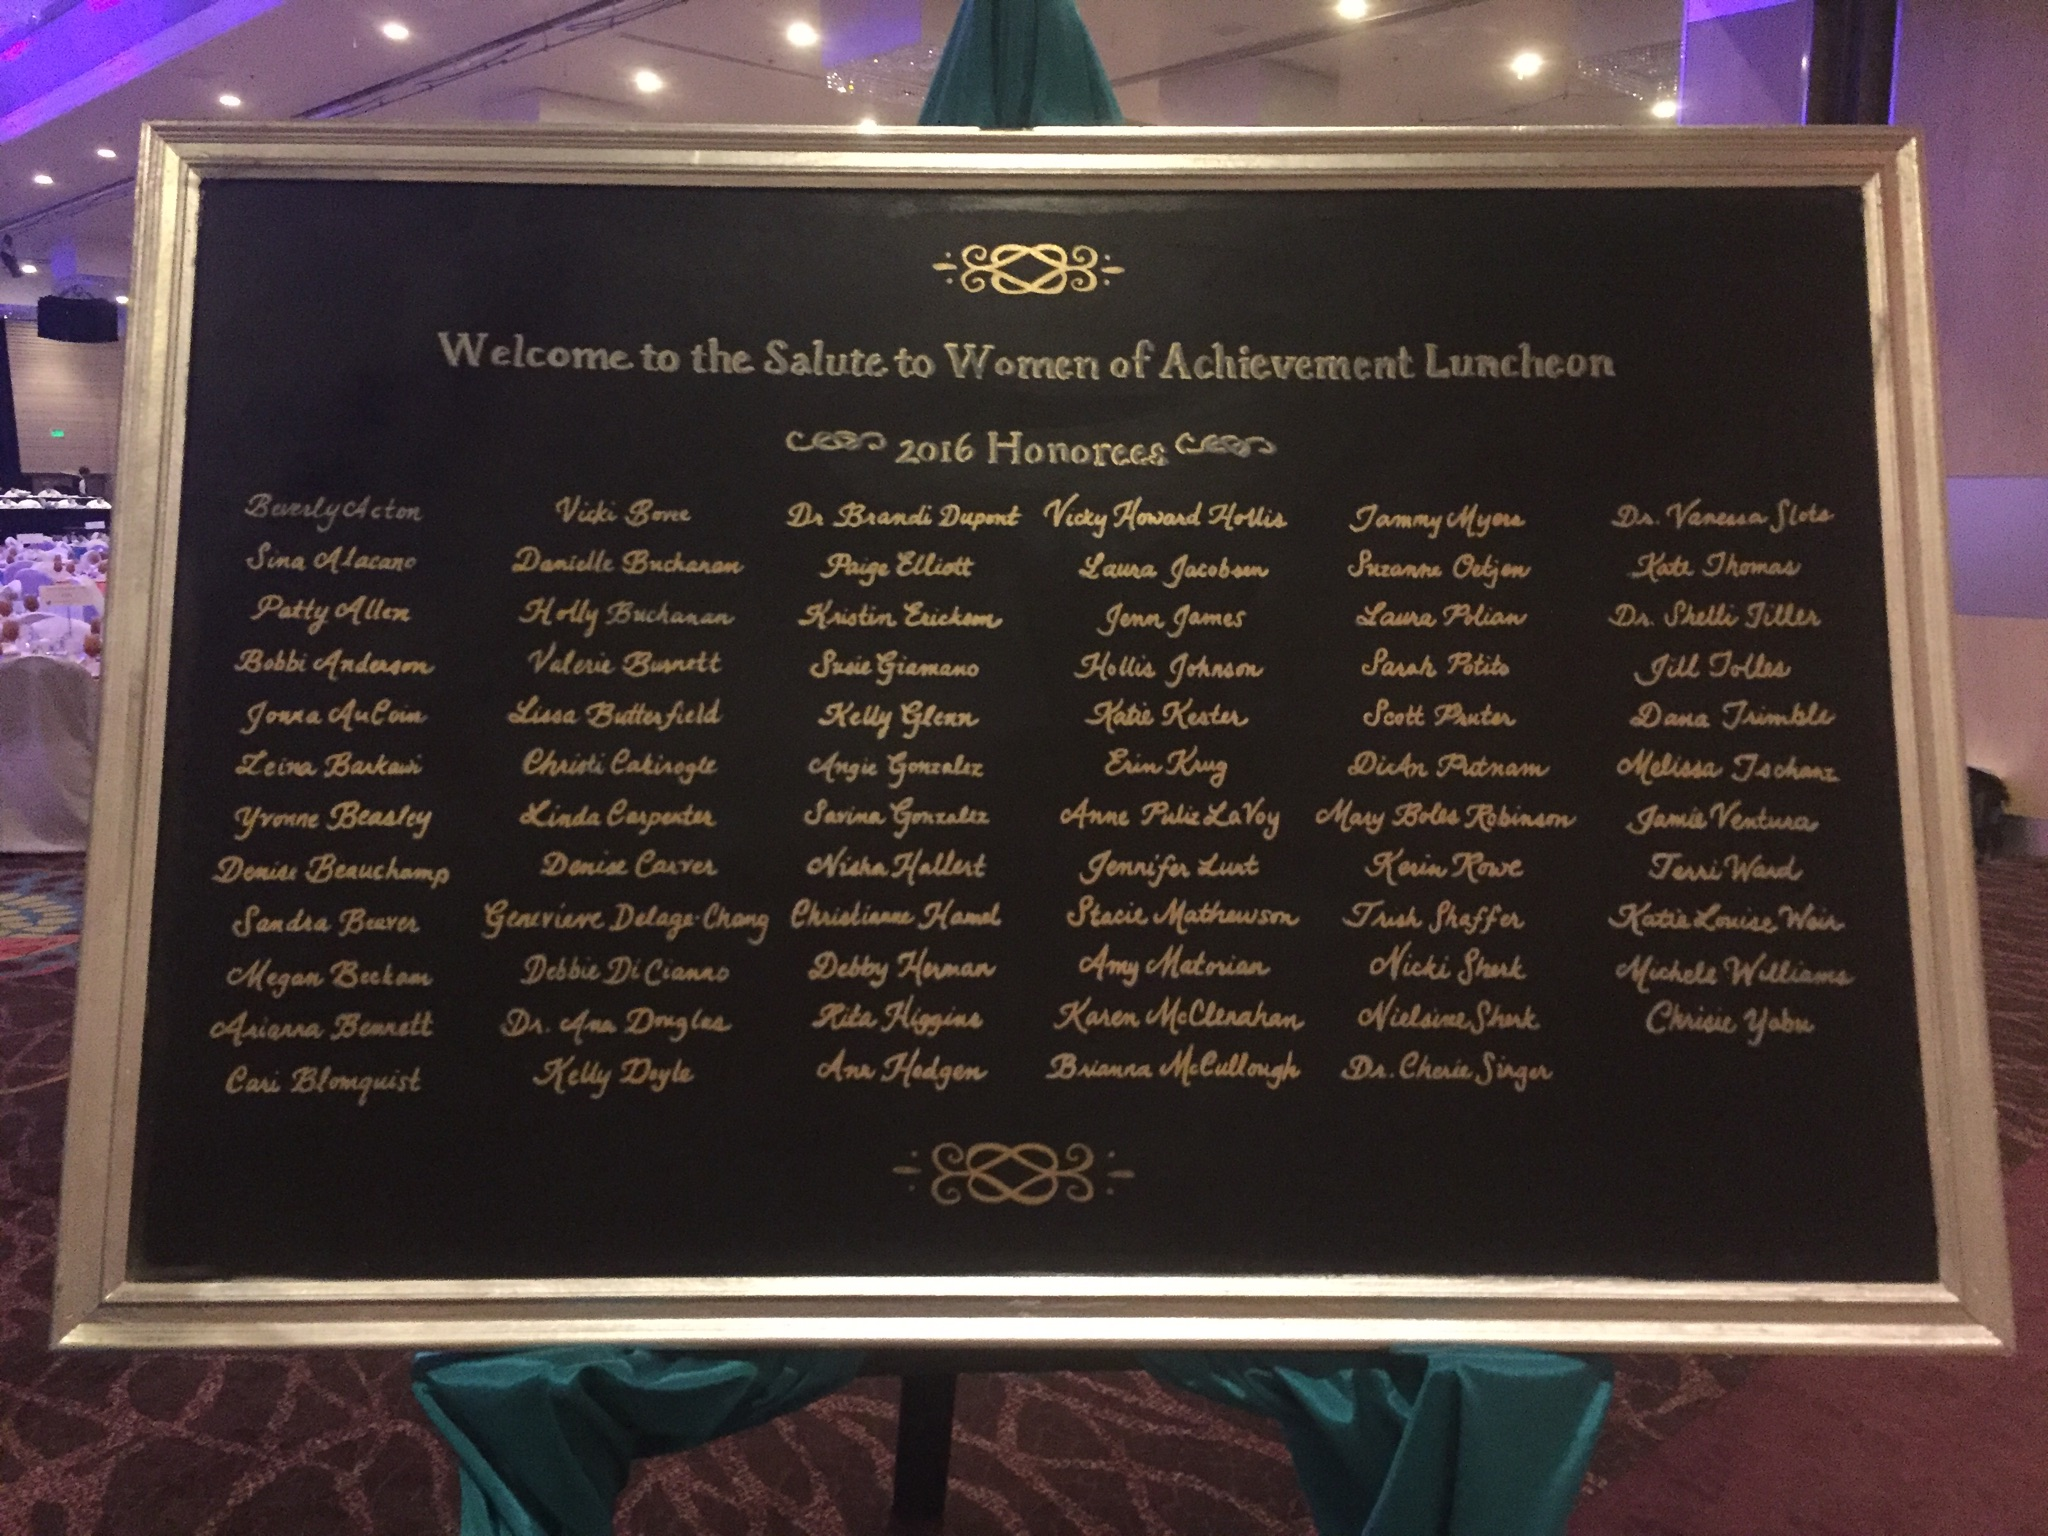 Over 70 honorees!